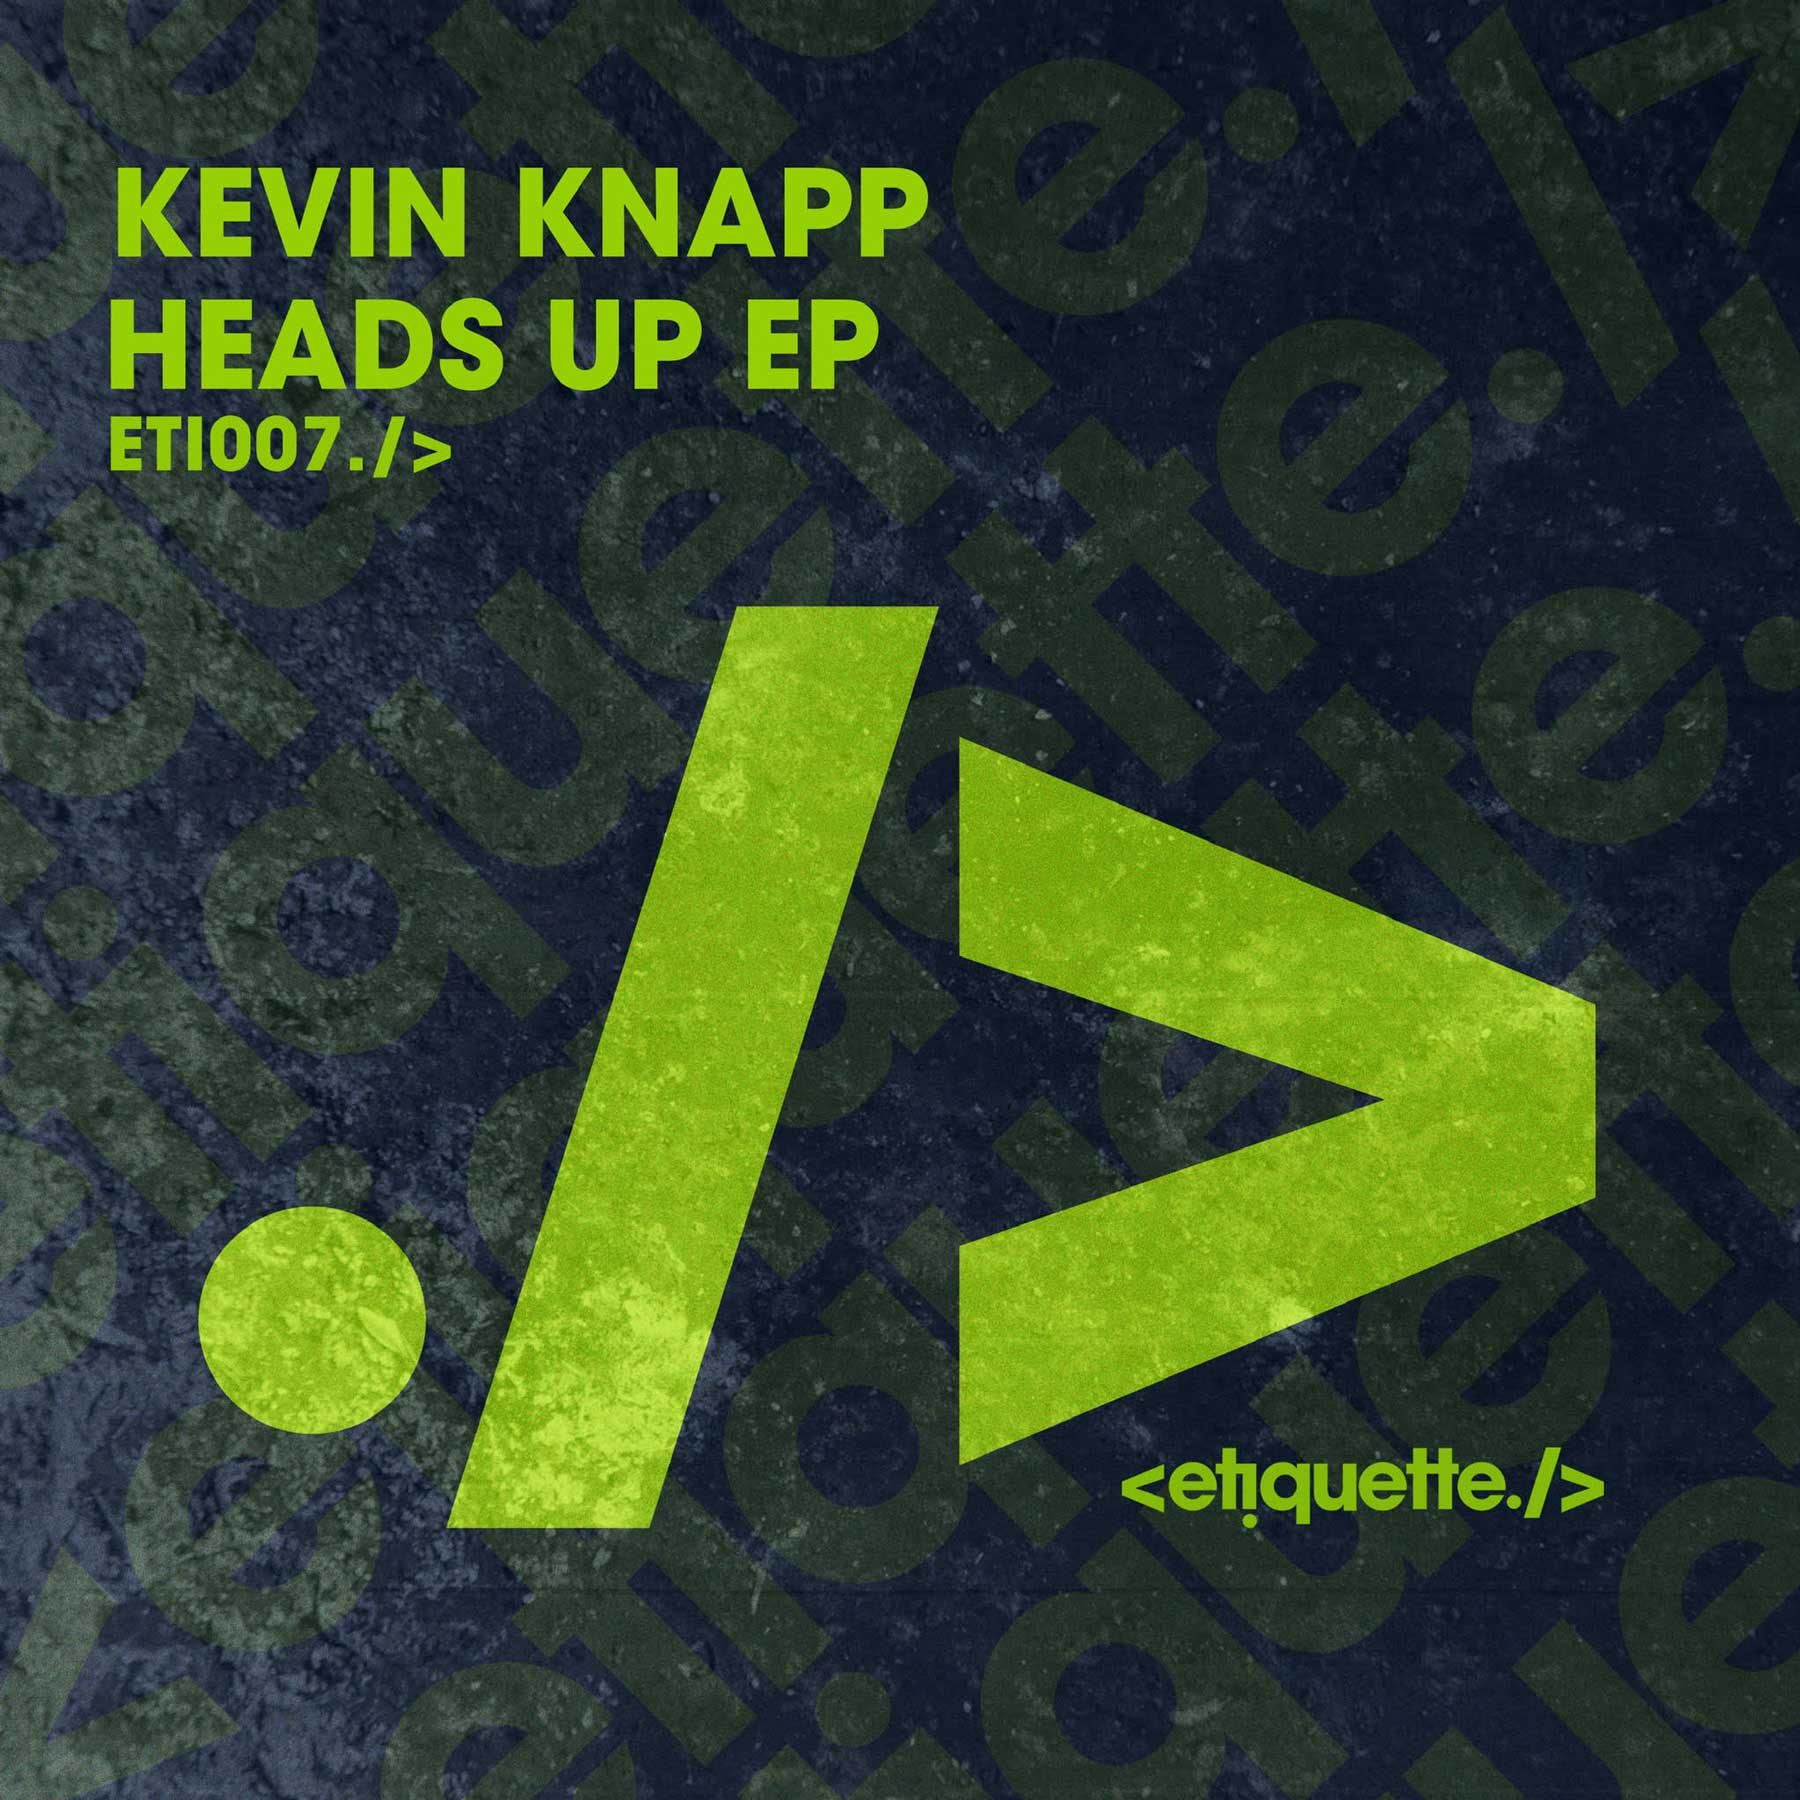 - This EP's a 10/10 twin sided HEATA! We're gassed to welcome Kevin Knapp onto the Etiquette roster... A firm favourite of Hannah Wants, we're hoping it won't be last EP you hear from him on the label!Kevin's Heads Up EP is OUT NOW! Buy / Stream Link:https://etiquette.lnk.to/HeadsUpEPEP